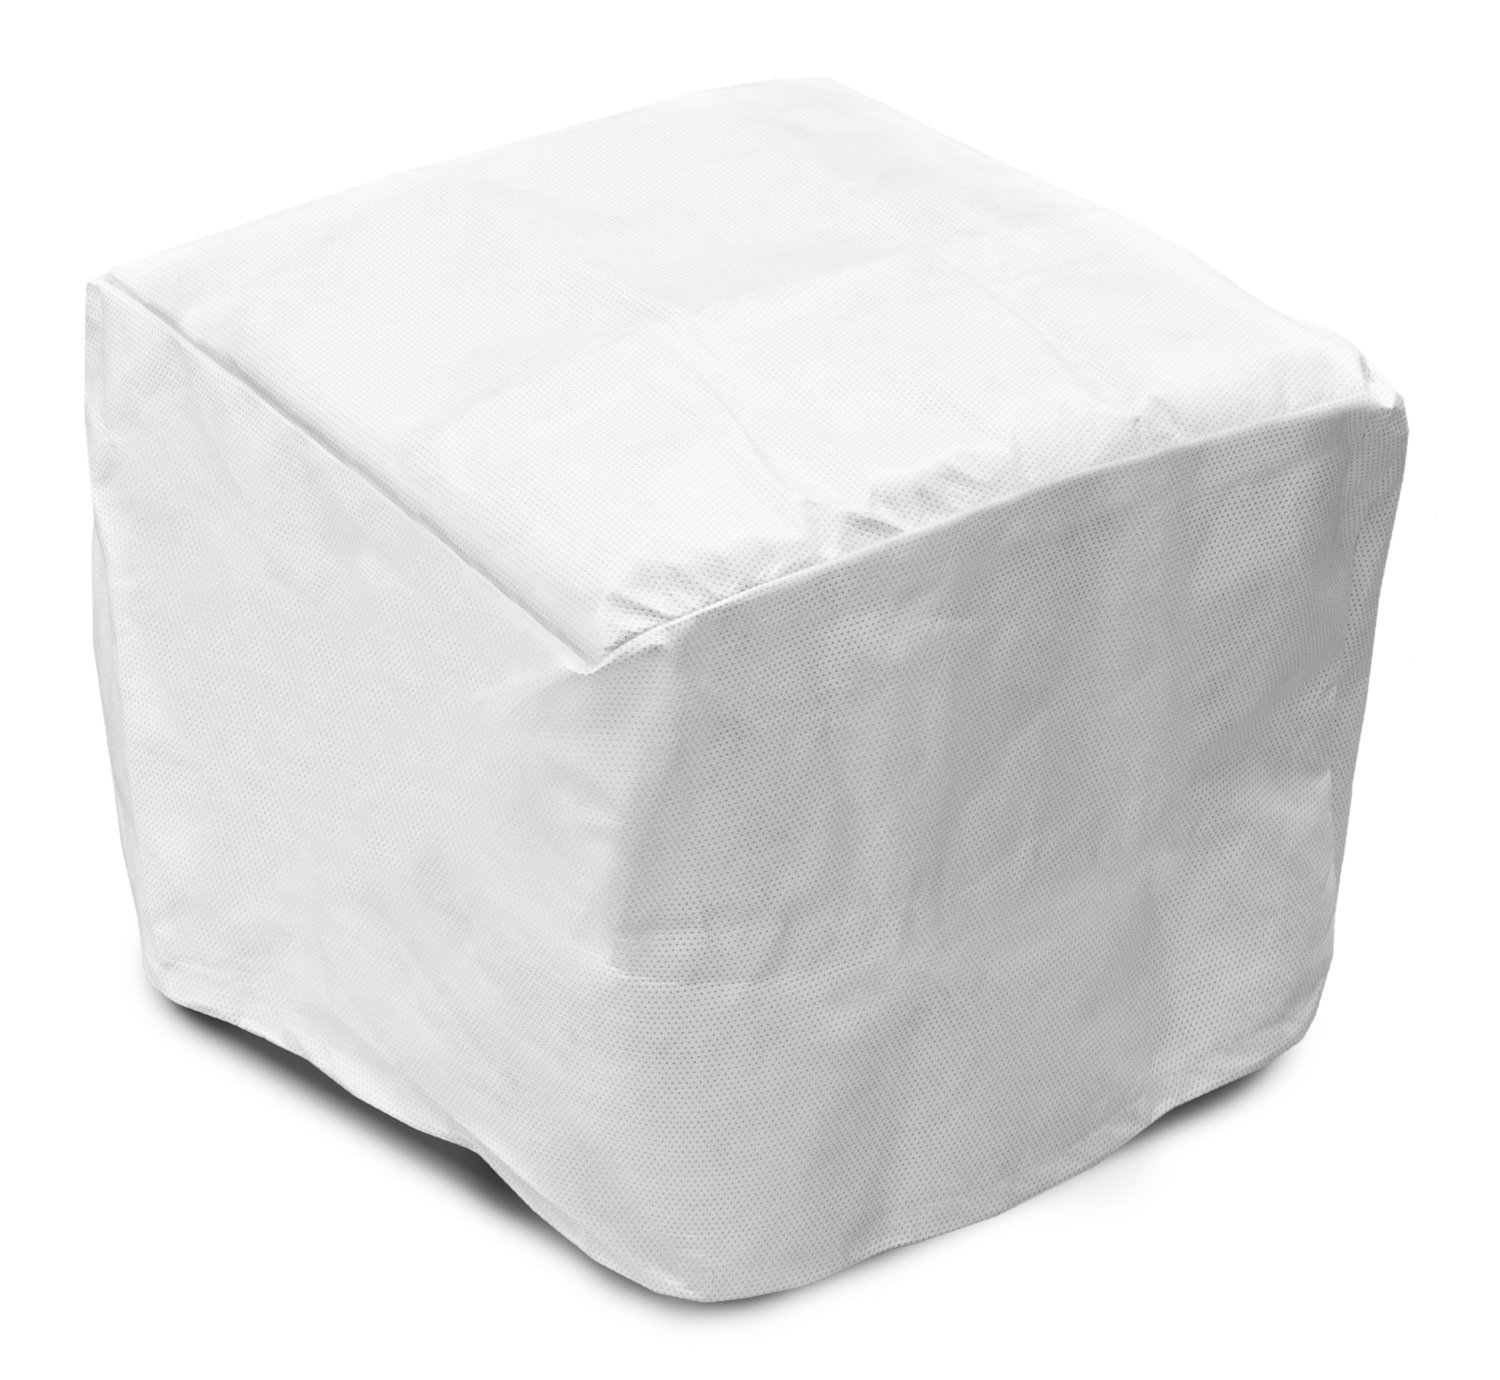 KoverRoos 54225 SupraRoos 18 in. Ottoman-Small Table Cover, White - 20 L x 20 W x 15 H in. B0071VY7VO